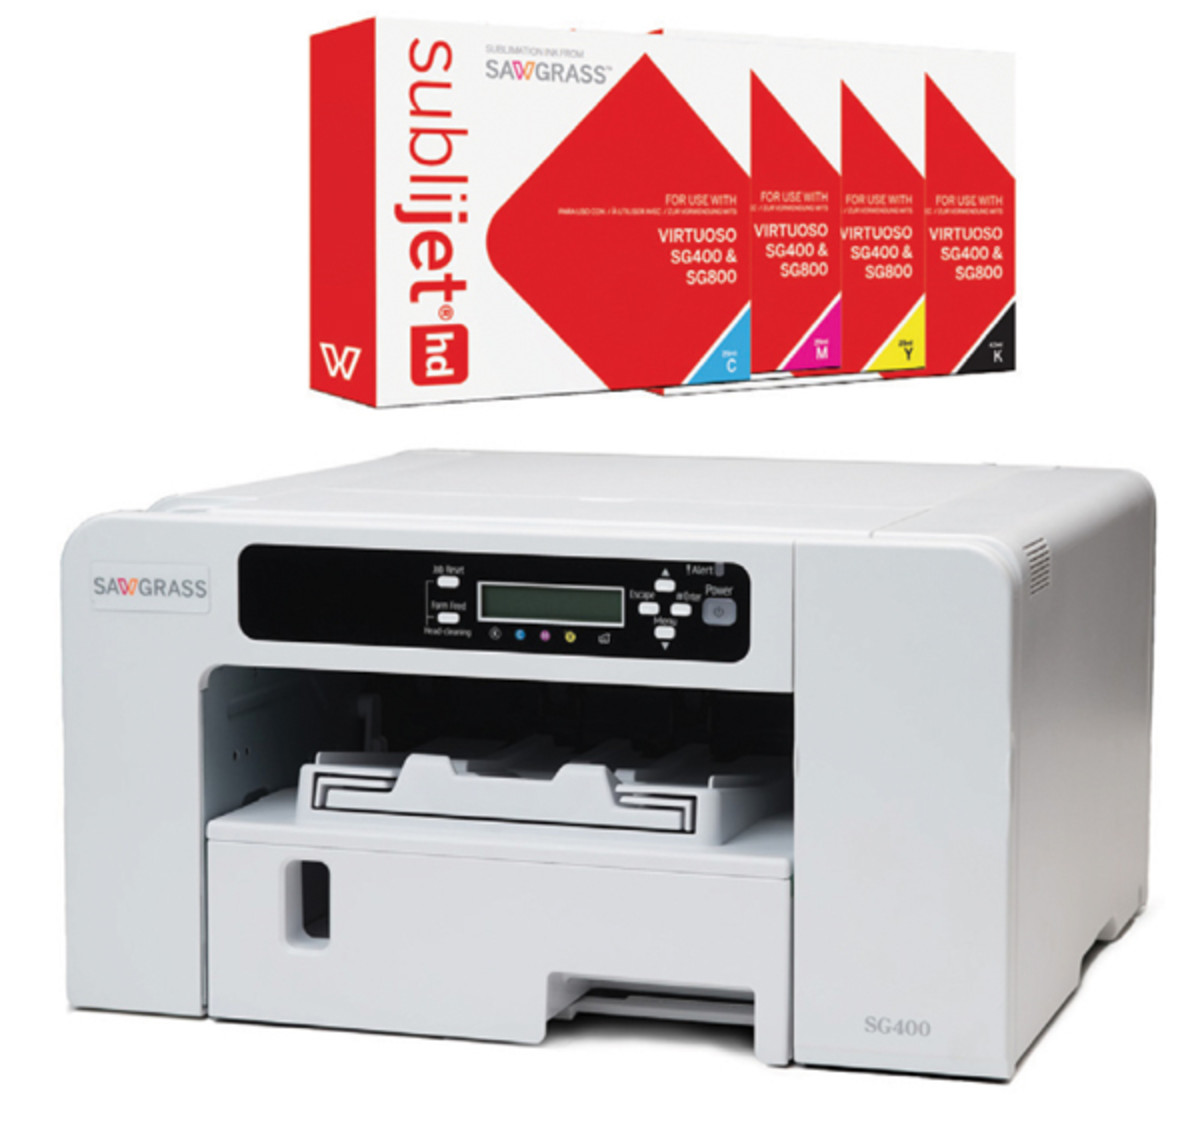 Some printers like the Sawgrass are dedicated to sublimation printing